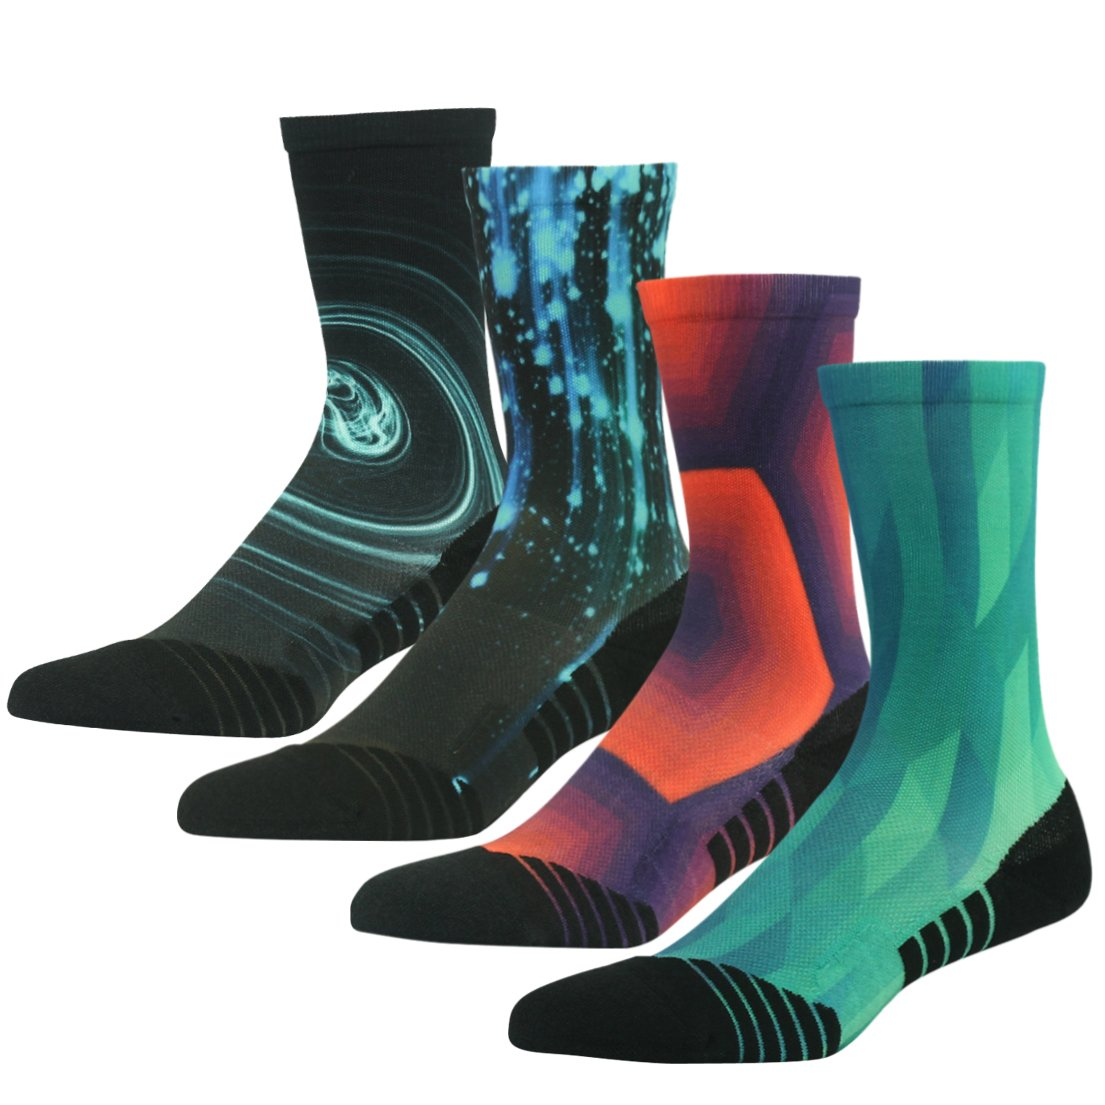 4 Pair color 14 Running Socks Support, HUSO Men Women High Performance Arch Compression Cushioned Quarter Socks 1,2,3,4,6 Pairs